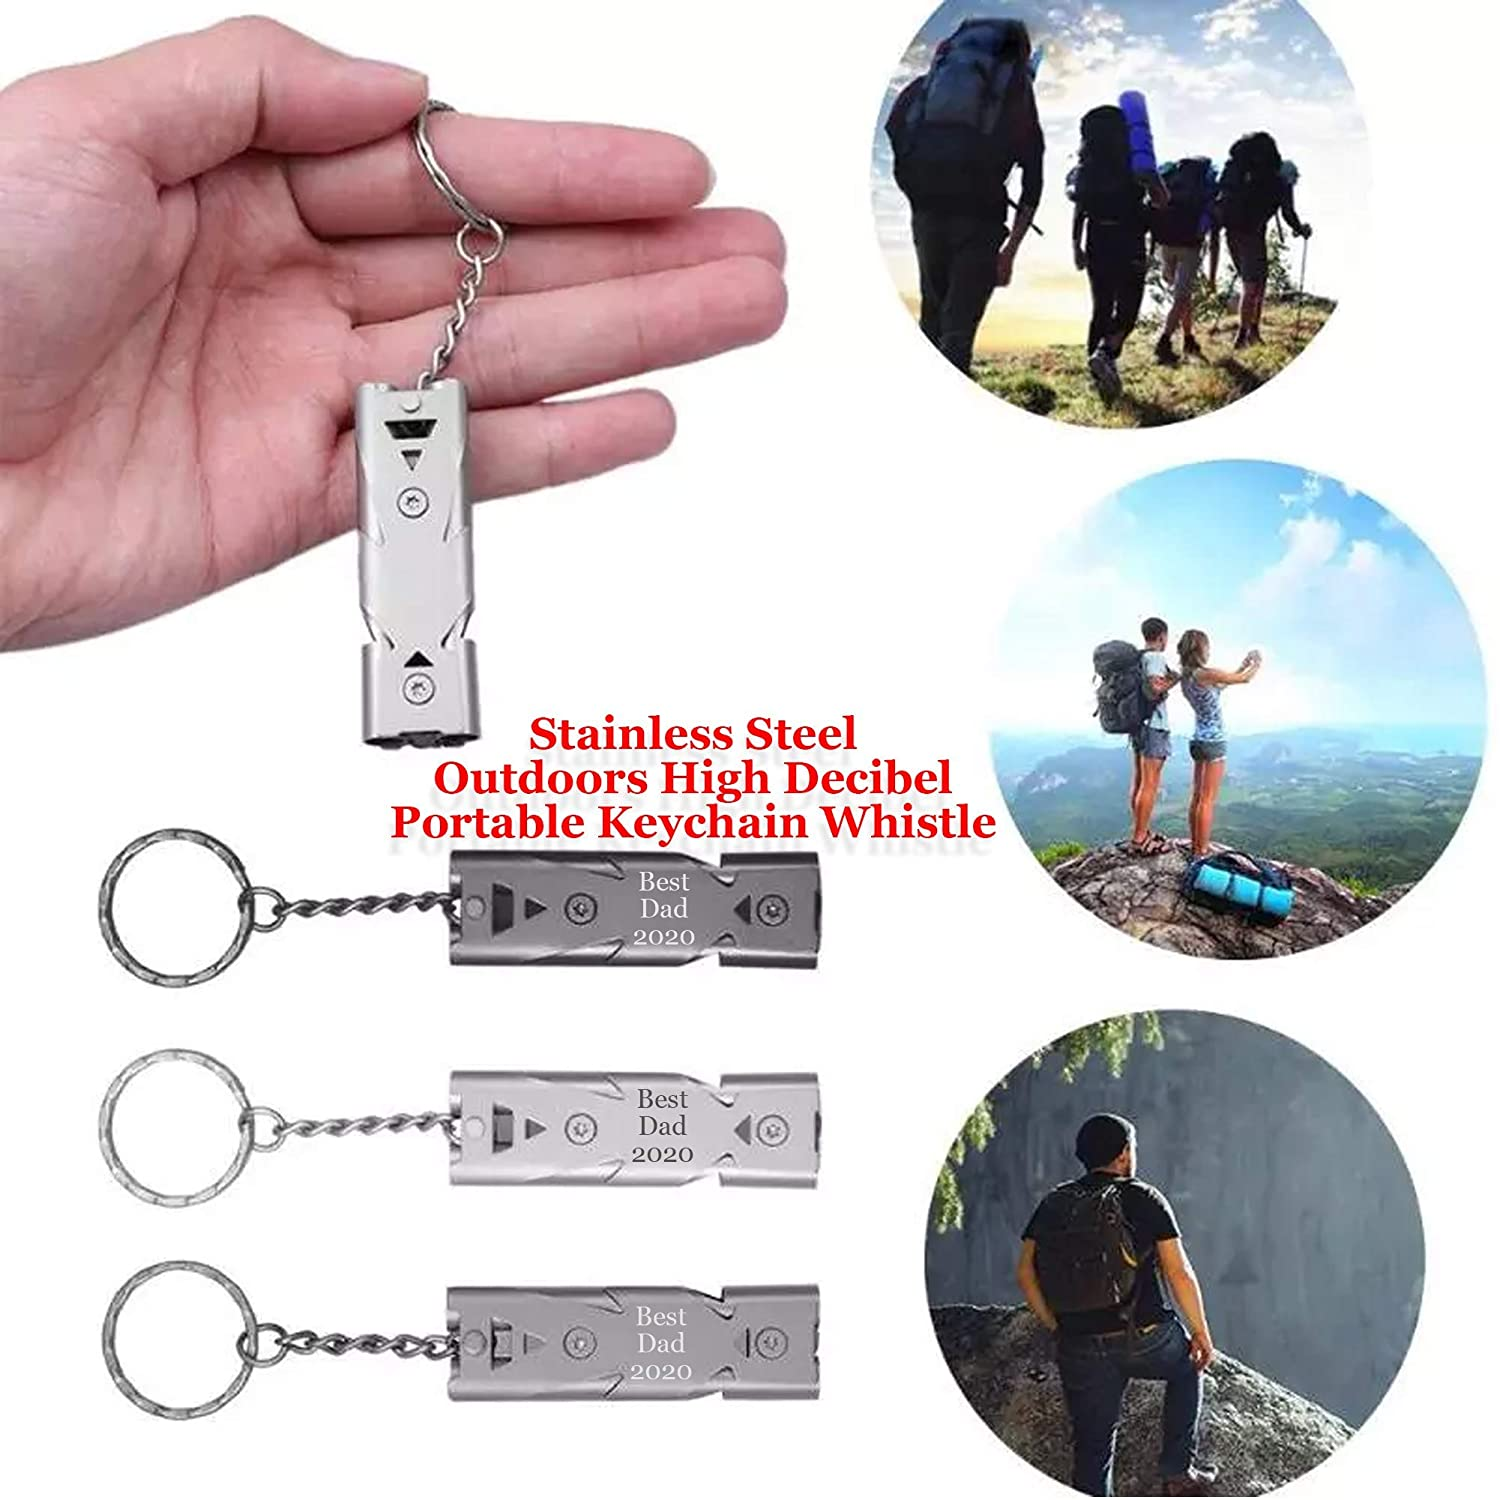 Outdoors High Decibel Portable Keychain Whistle Stainless Steel Double Pipe Emer